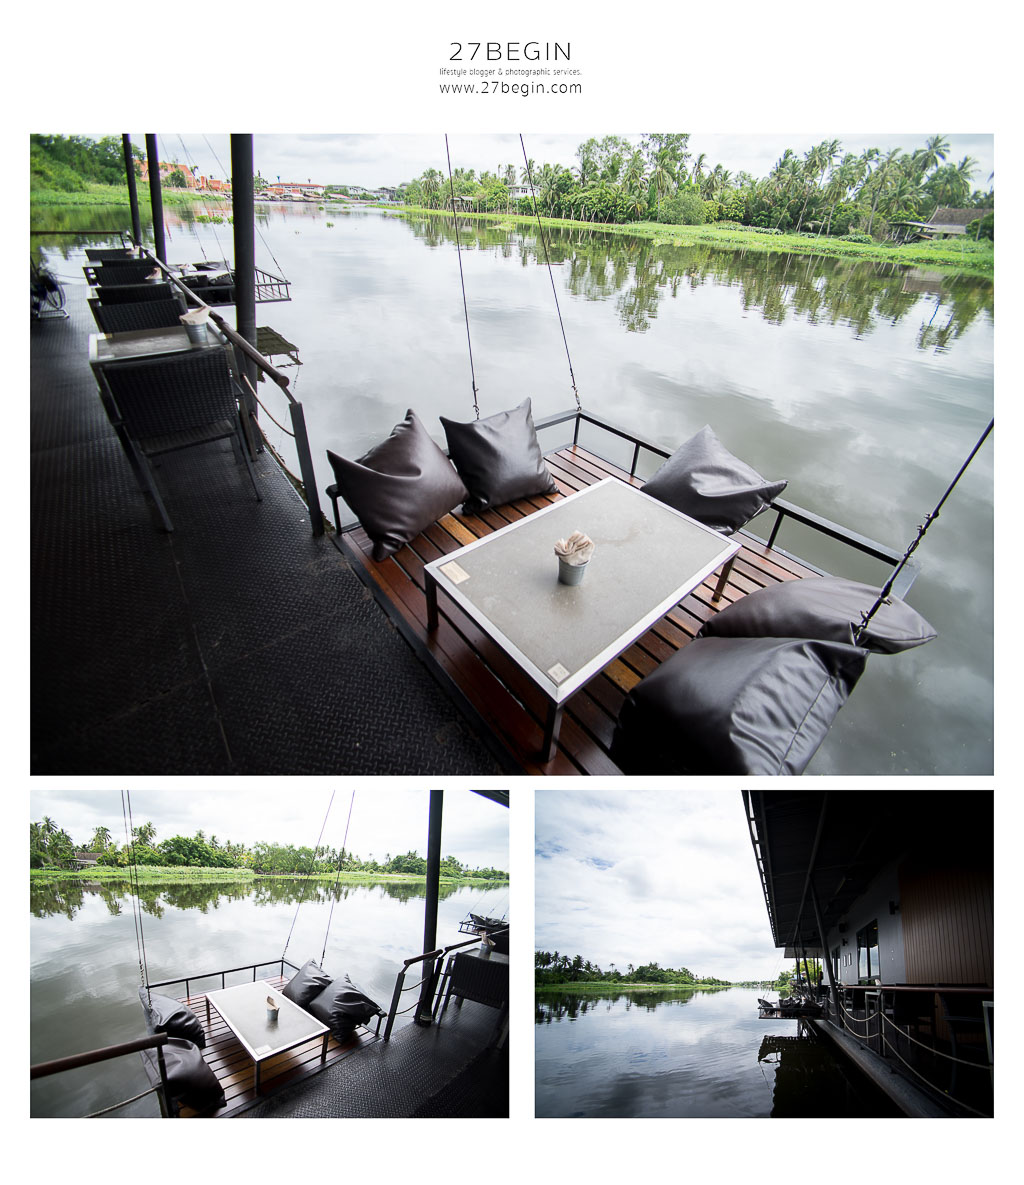 27begin_riverfloatingcafe6